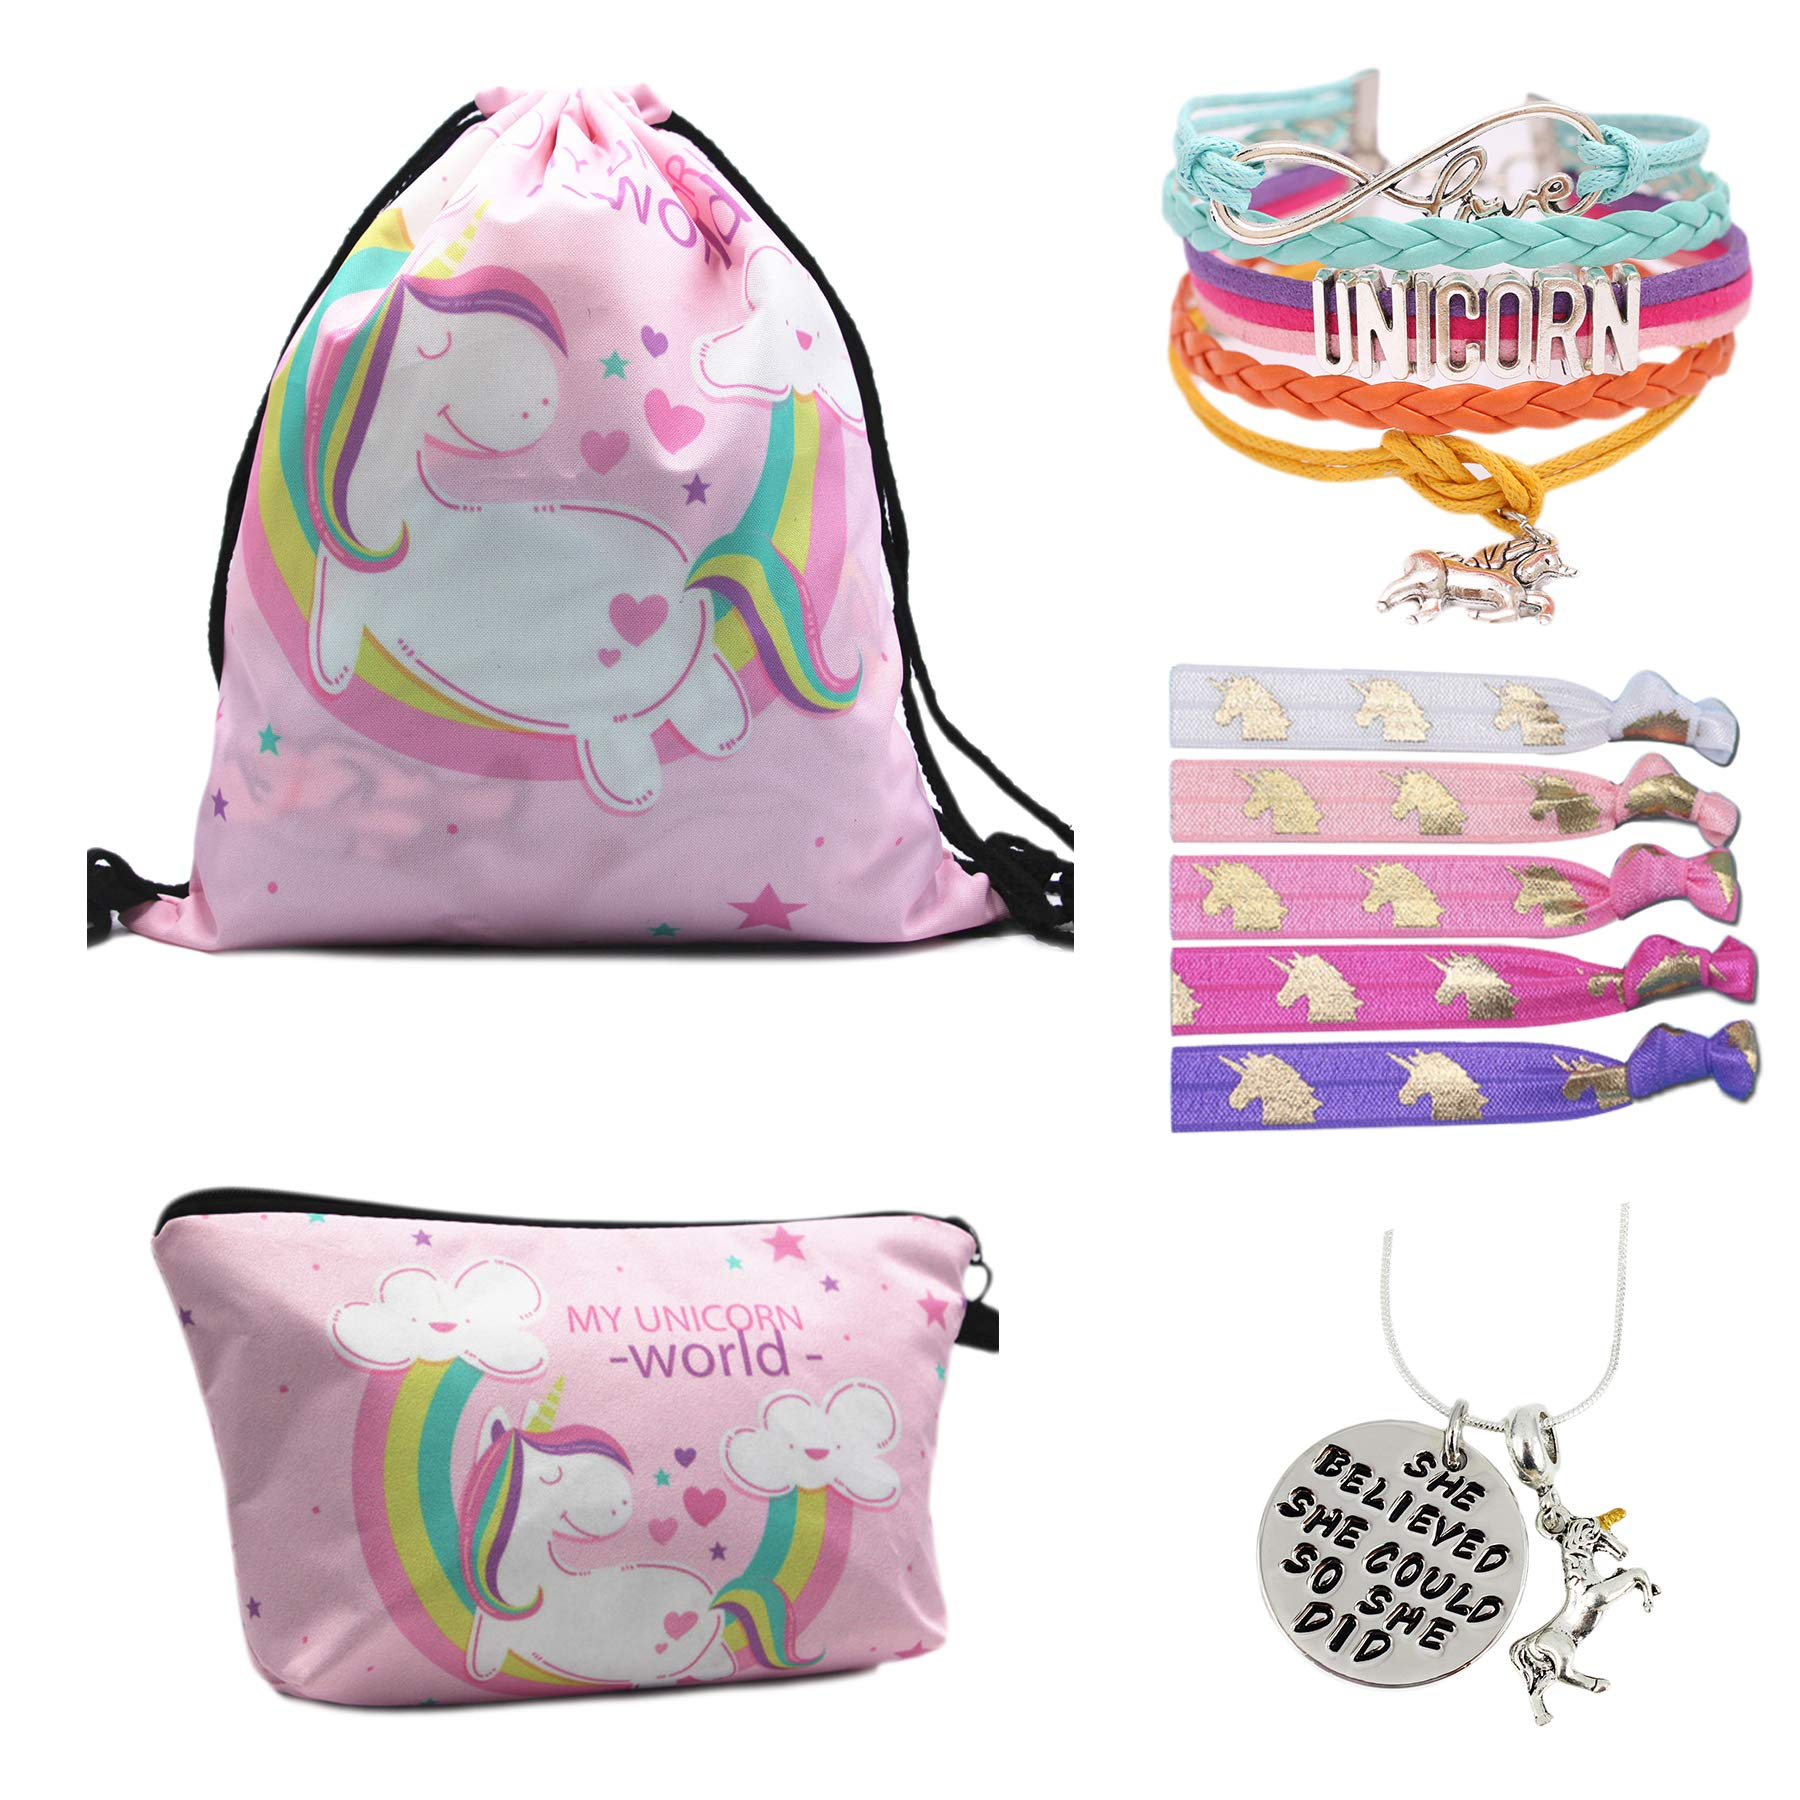 Unicorn Gifts for Girls - Unicorn Drawstring Backpack/Makeup Bag/Bracelet/Inspirational Necklace/Hair Ties